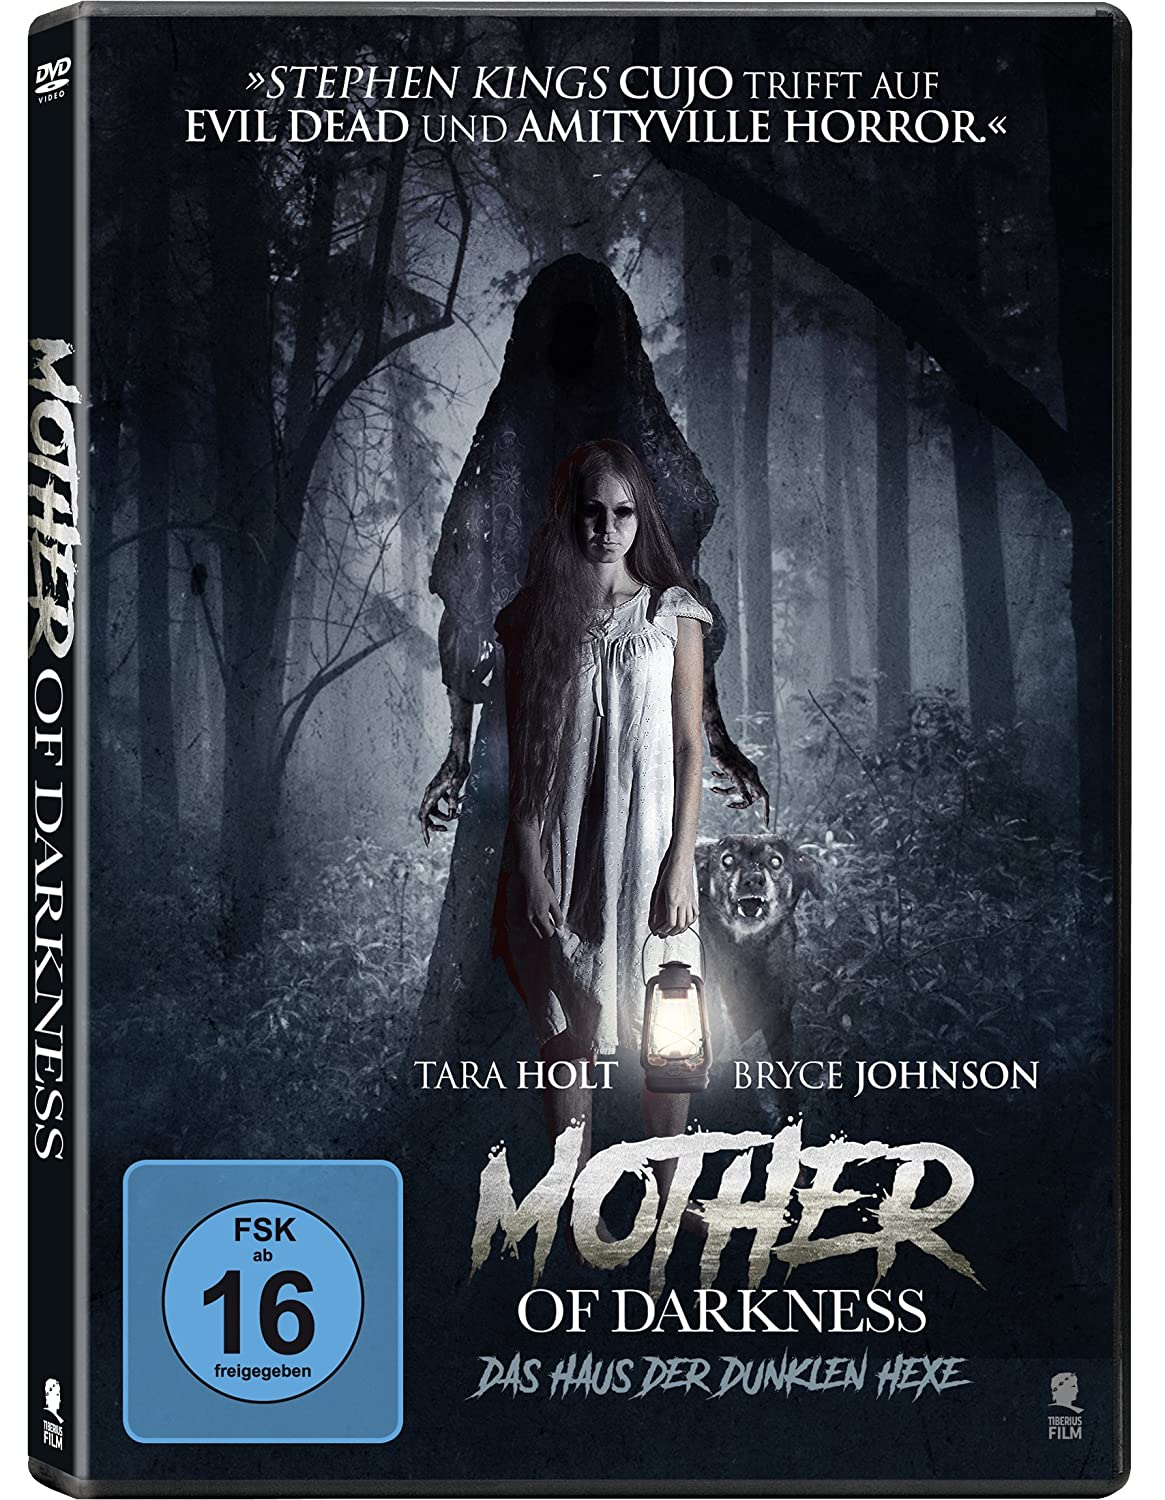 Mother of Darkness - Das Haus der dunklen Hexe: Amazon.de: Tara Holt ...